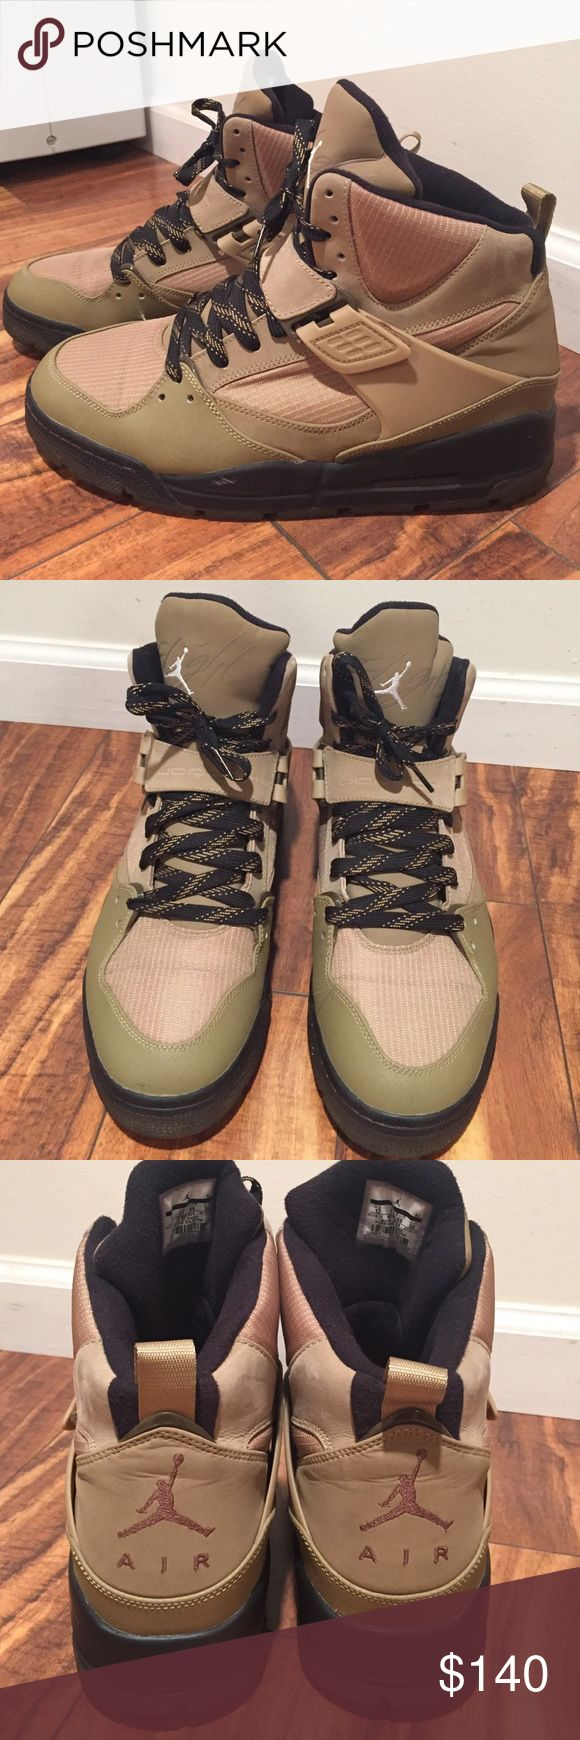 Nike Air Jordan boots. 😍⭐️😍 In perfect condition, Air Jordans.  Men's size 12. Nike Shoes Boots